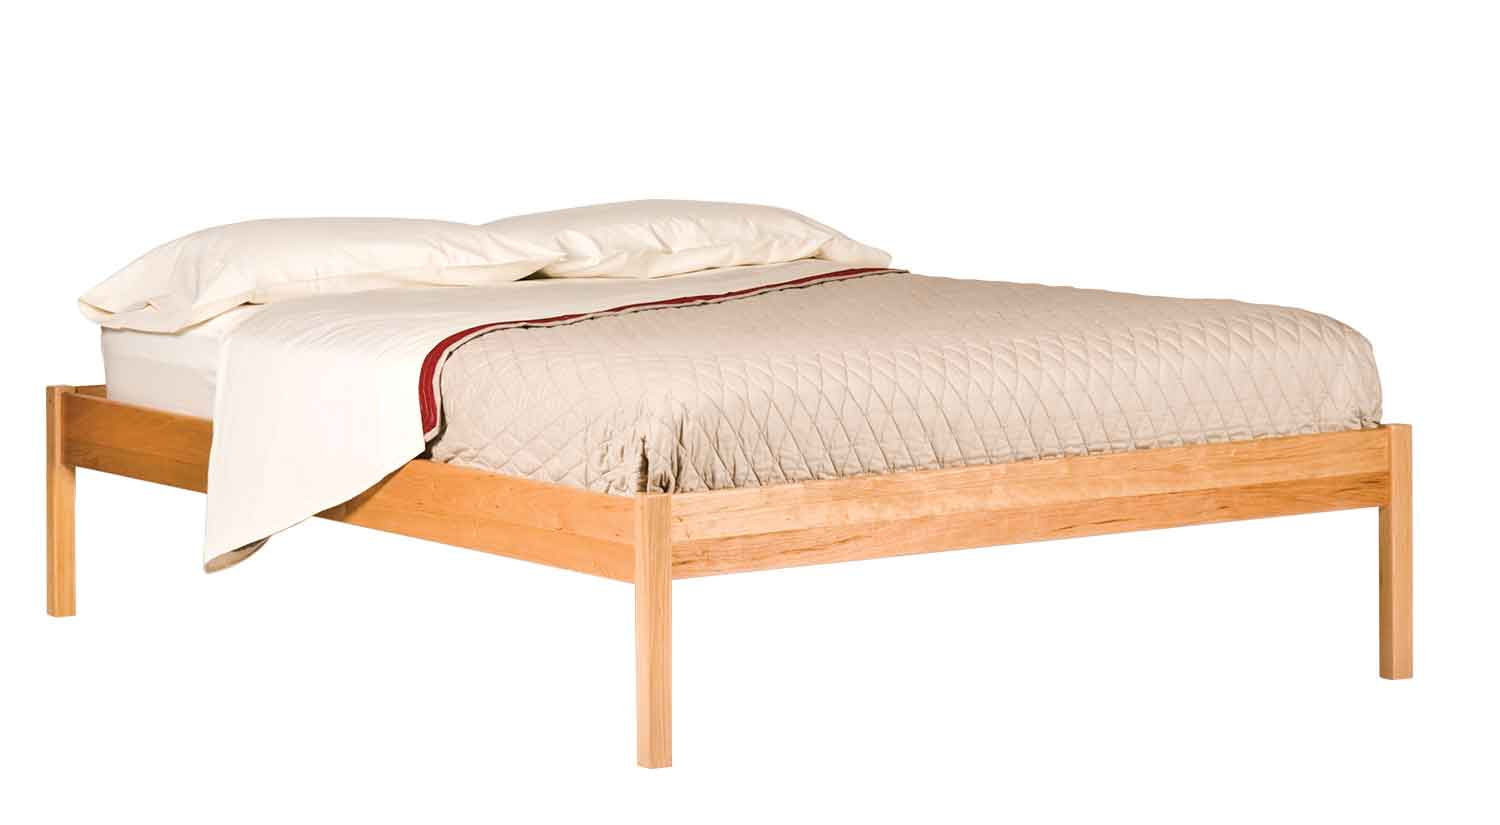 Circle Furniture Basic Bed Hand Crafted Beds New England Circle